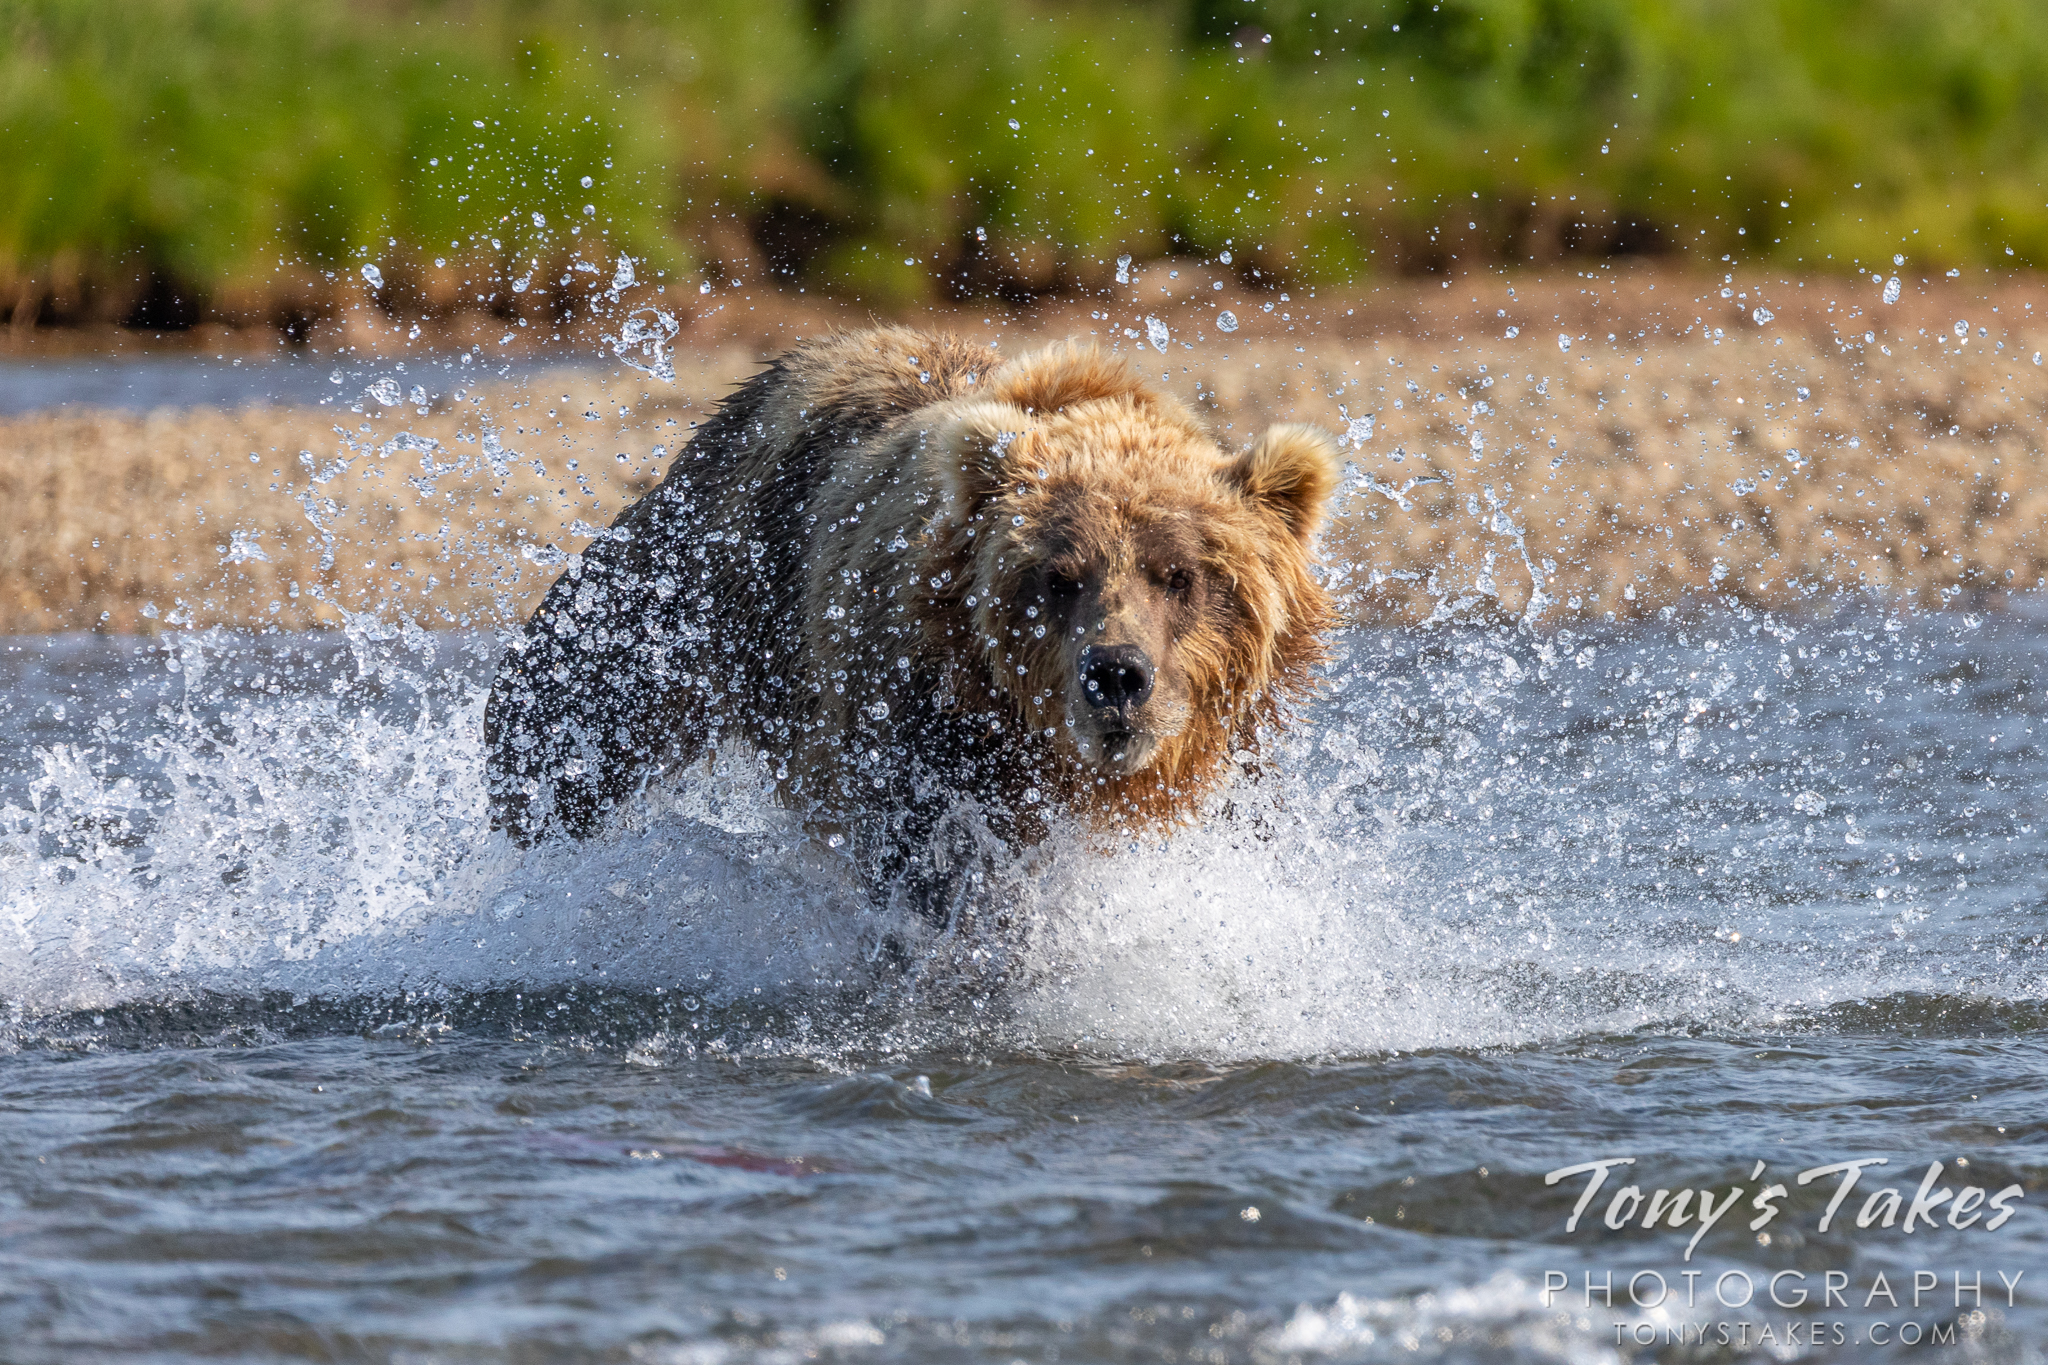 A brown bear charges through a river toward salmon. (© Tony's Takes)